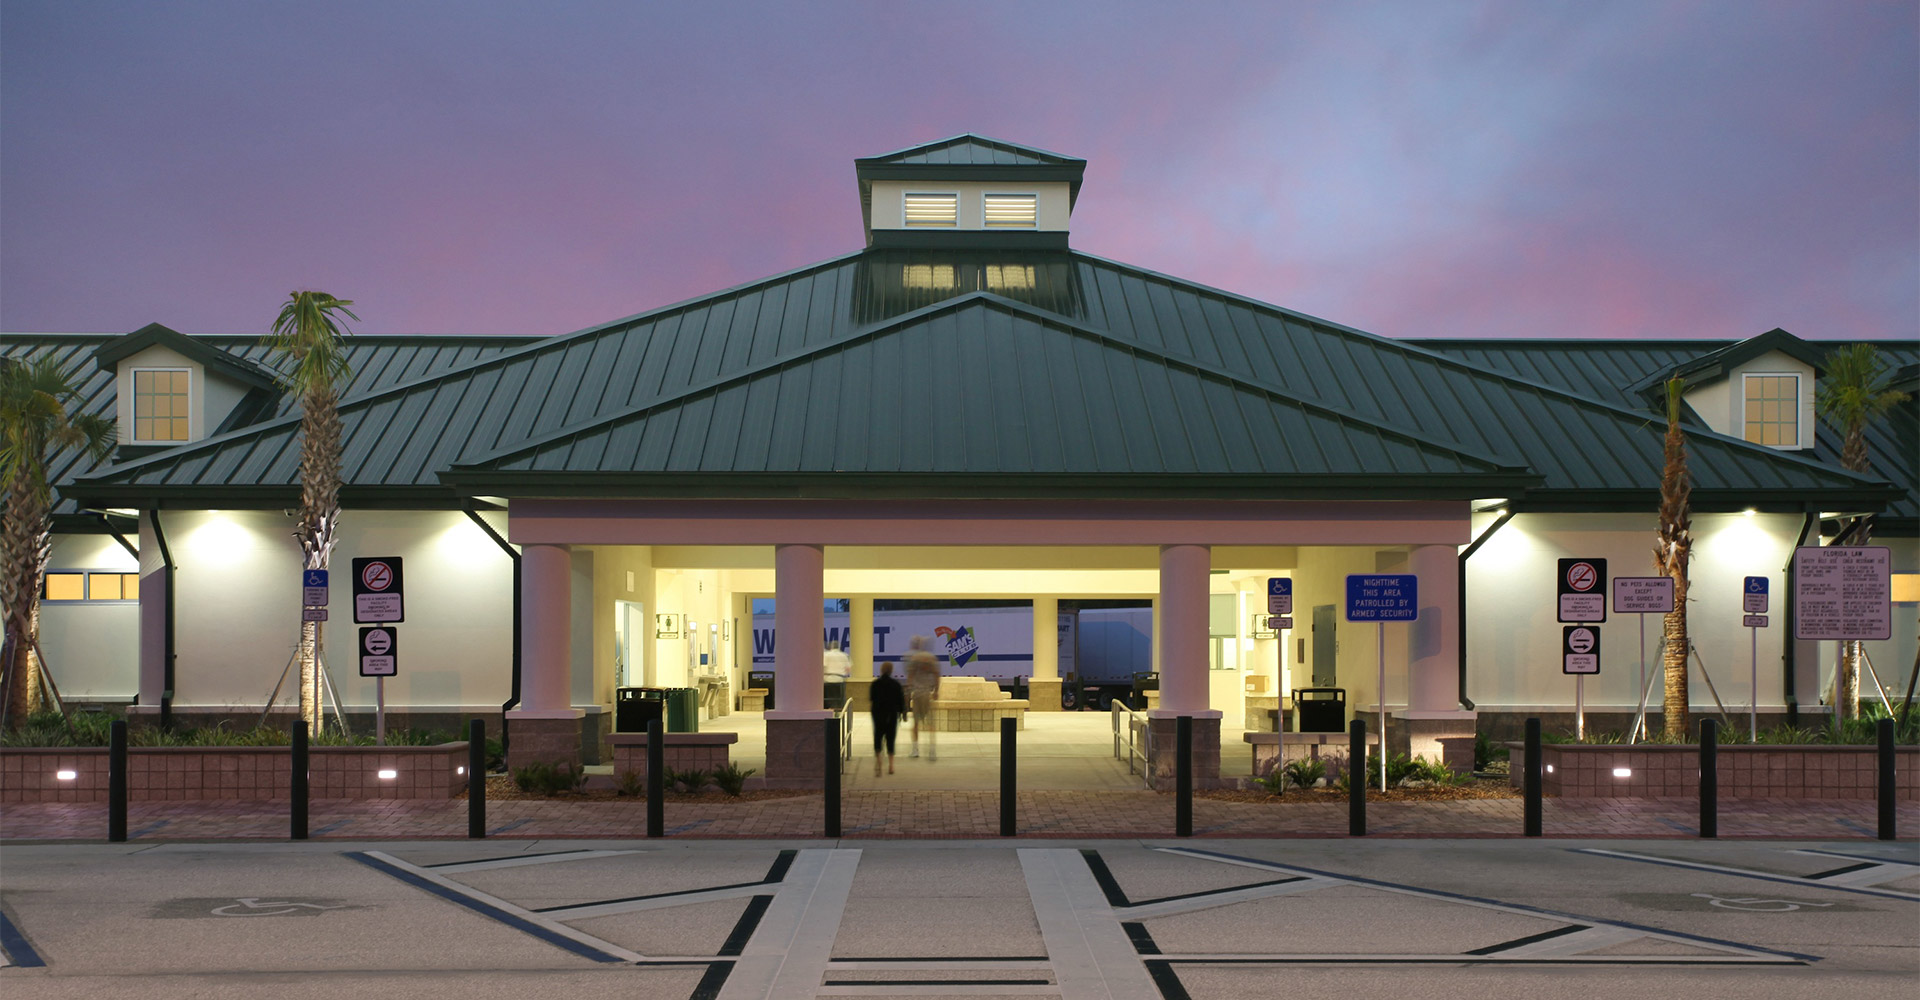 I-75 rest area at dusk.